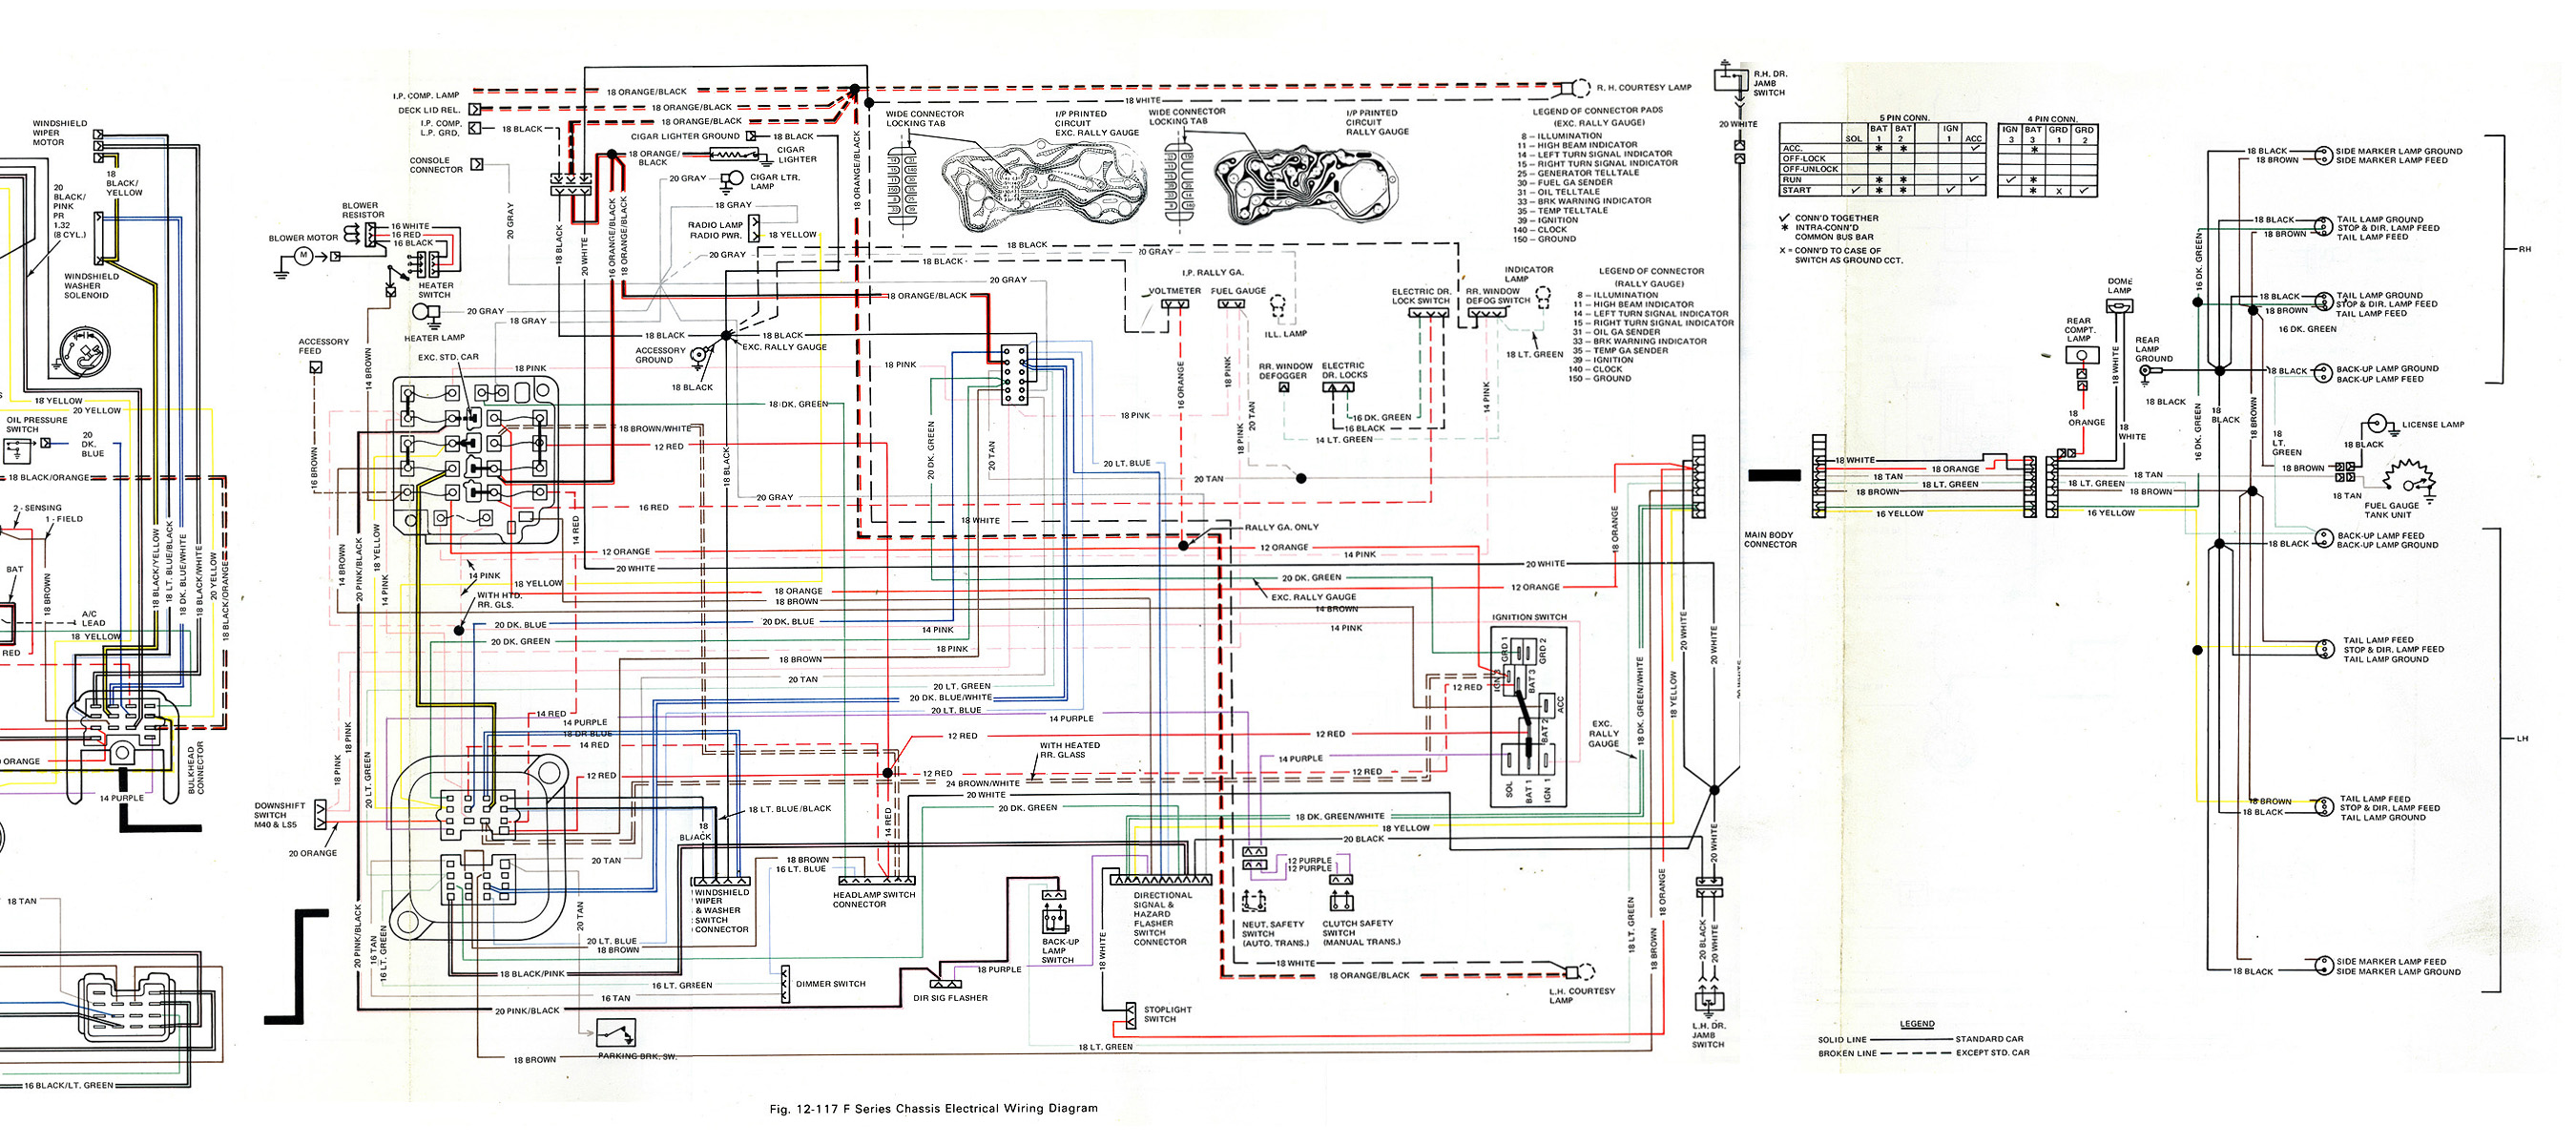 1980 firebird wiring diagram 1980 cutlass wiring diagram 2004 Pontiac Grand  Prix Wiring-Diagram 2000